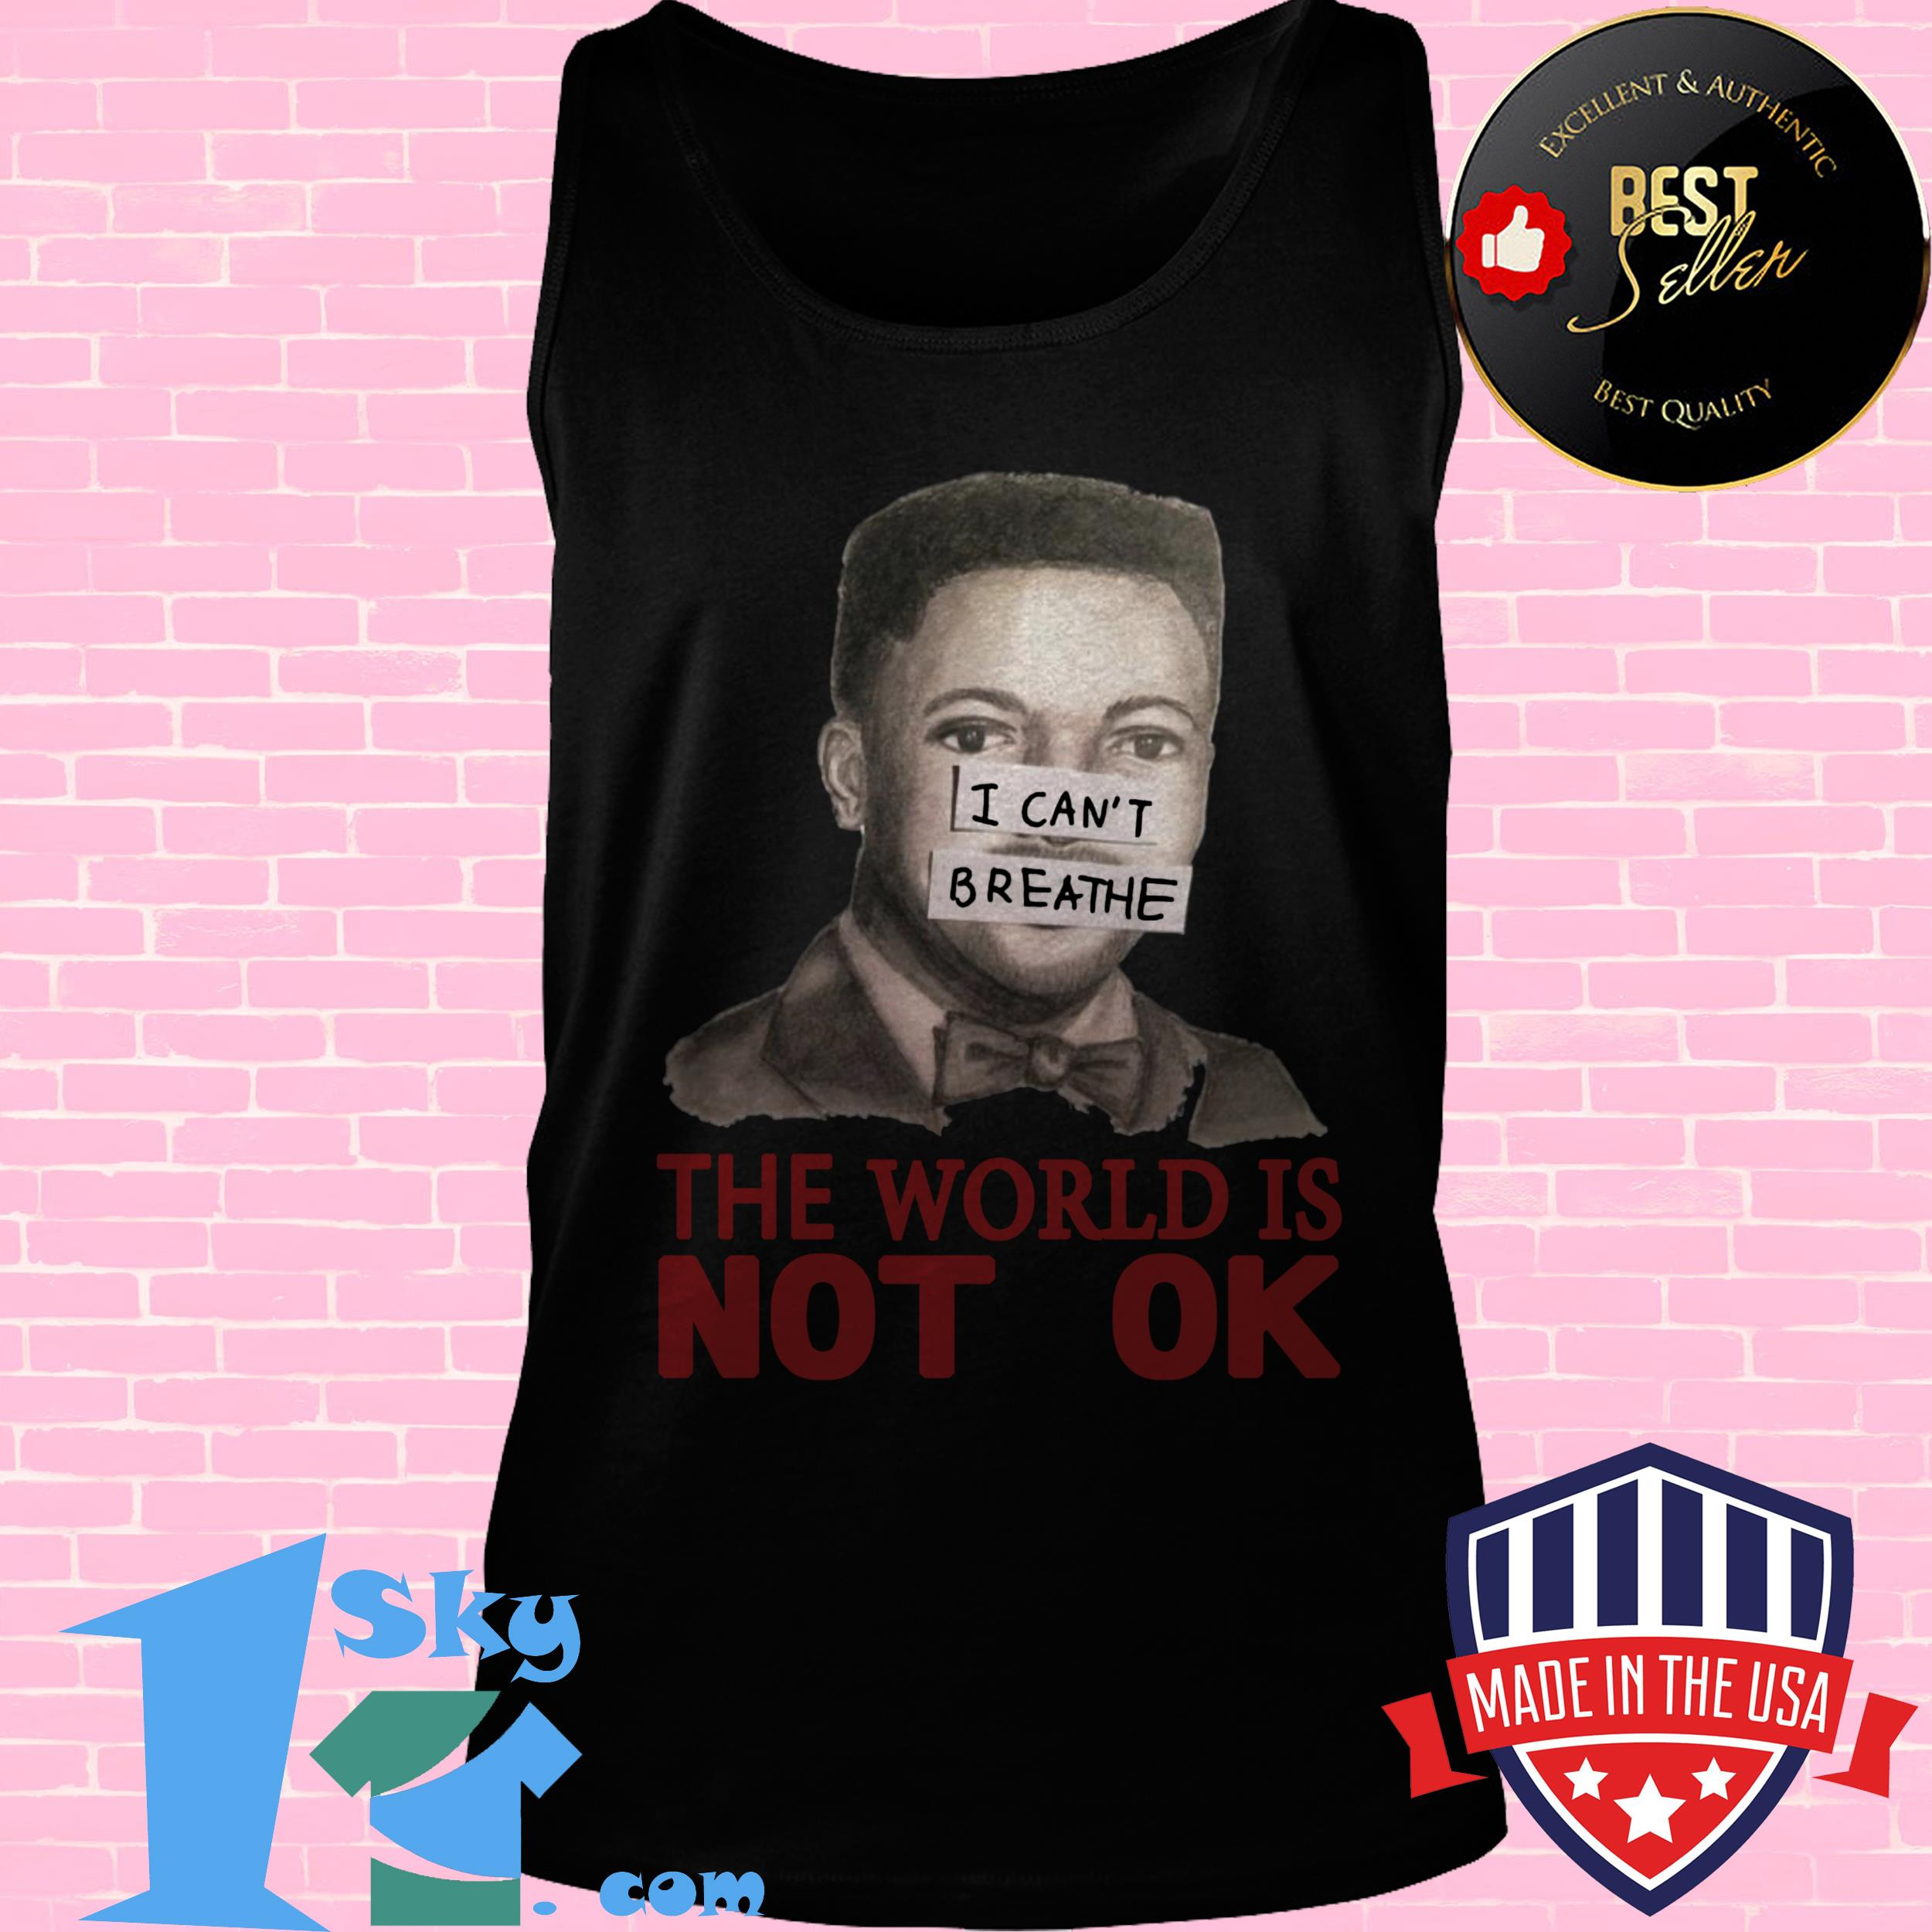 i cant breathe the world is not ok gift tank top - I Can't Breathe The World Is Not Ok Gift shirt